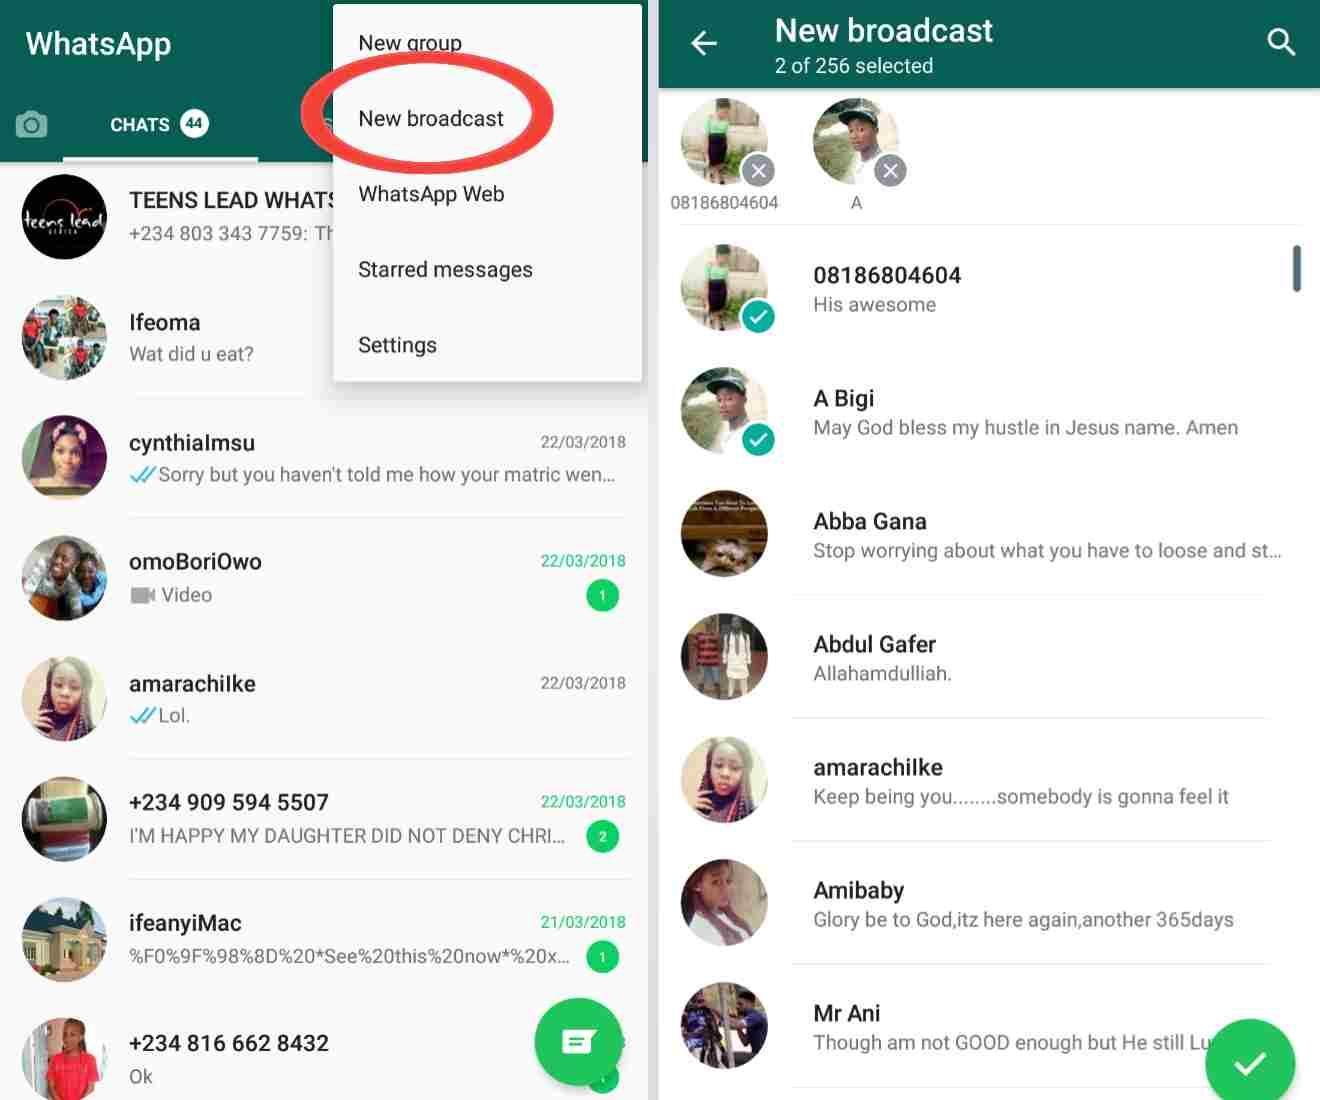 whatsapp tricks 101 - how to send a single message to a large group of people at once using the WhatsApp broadcast feature